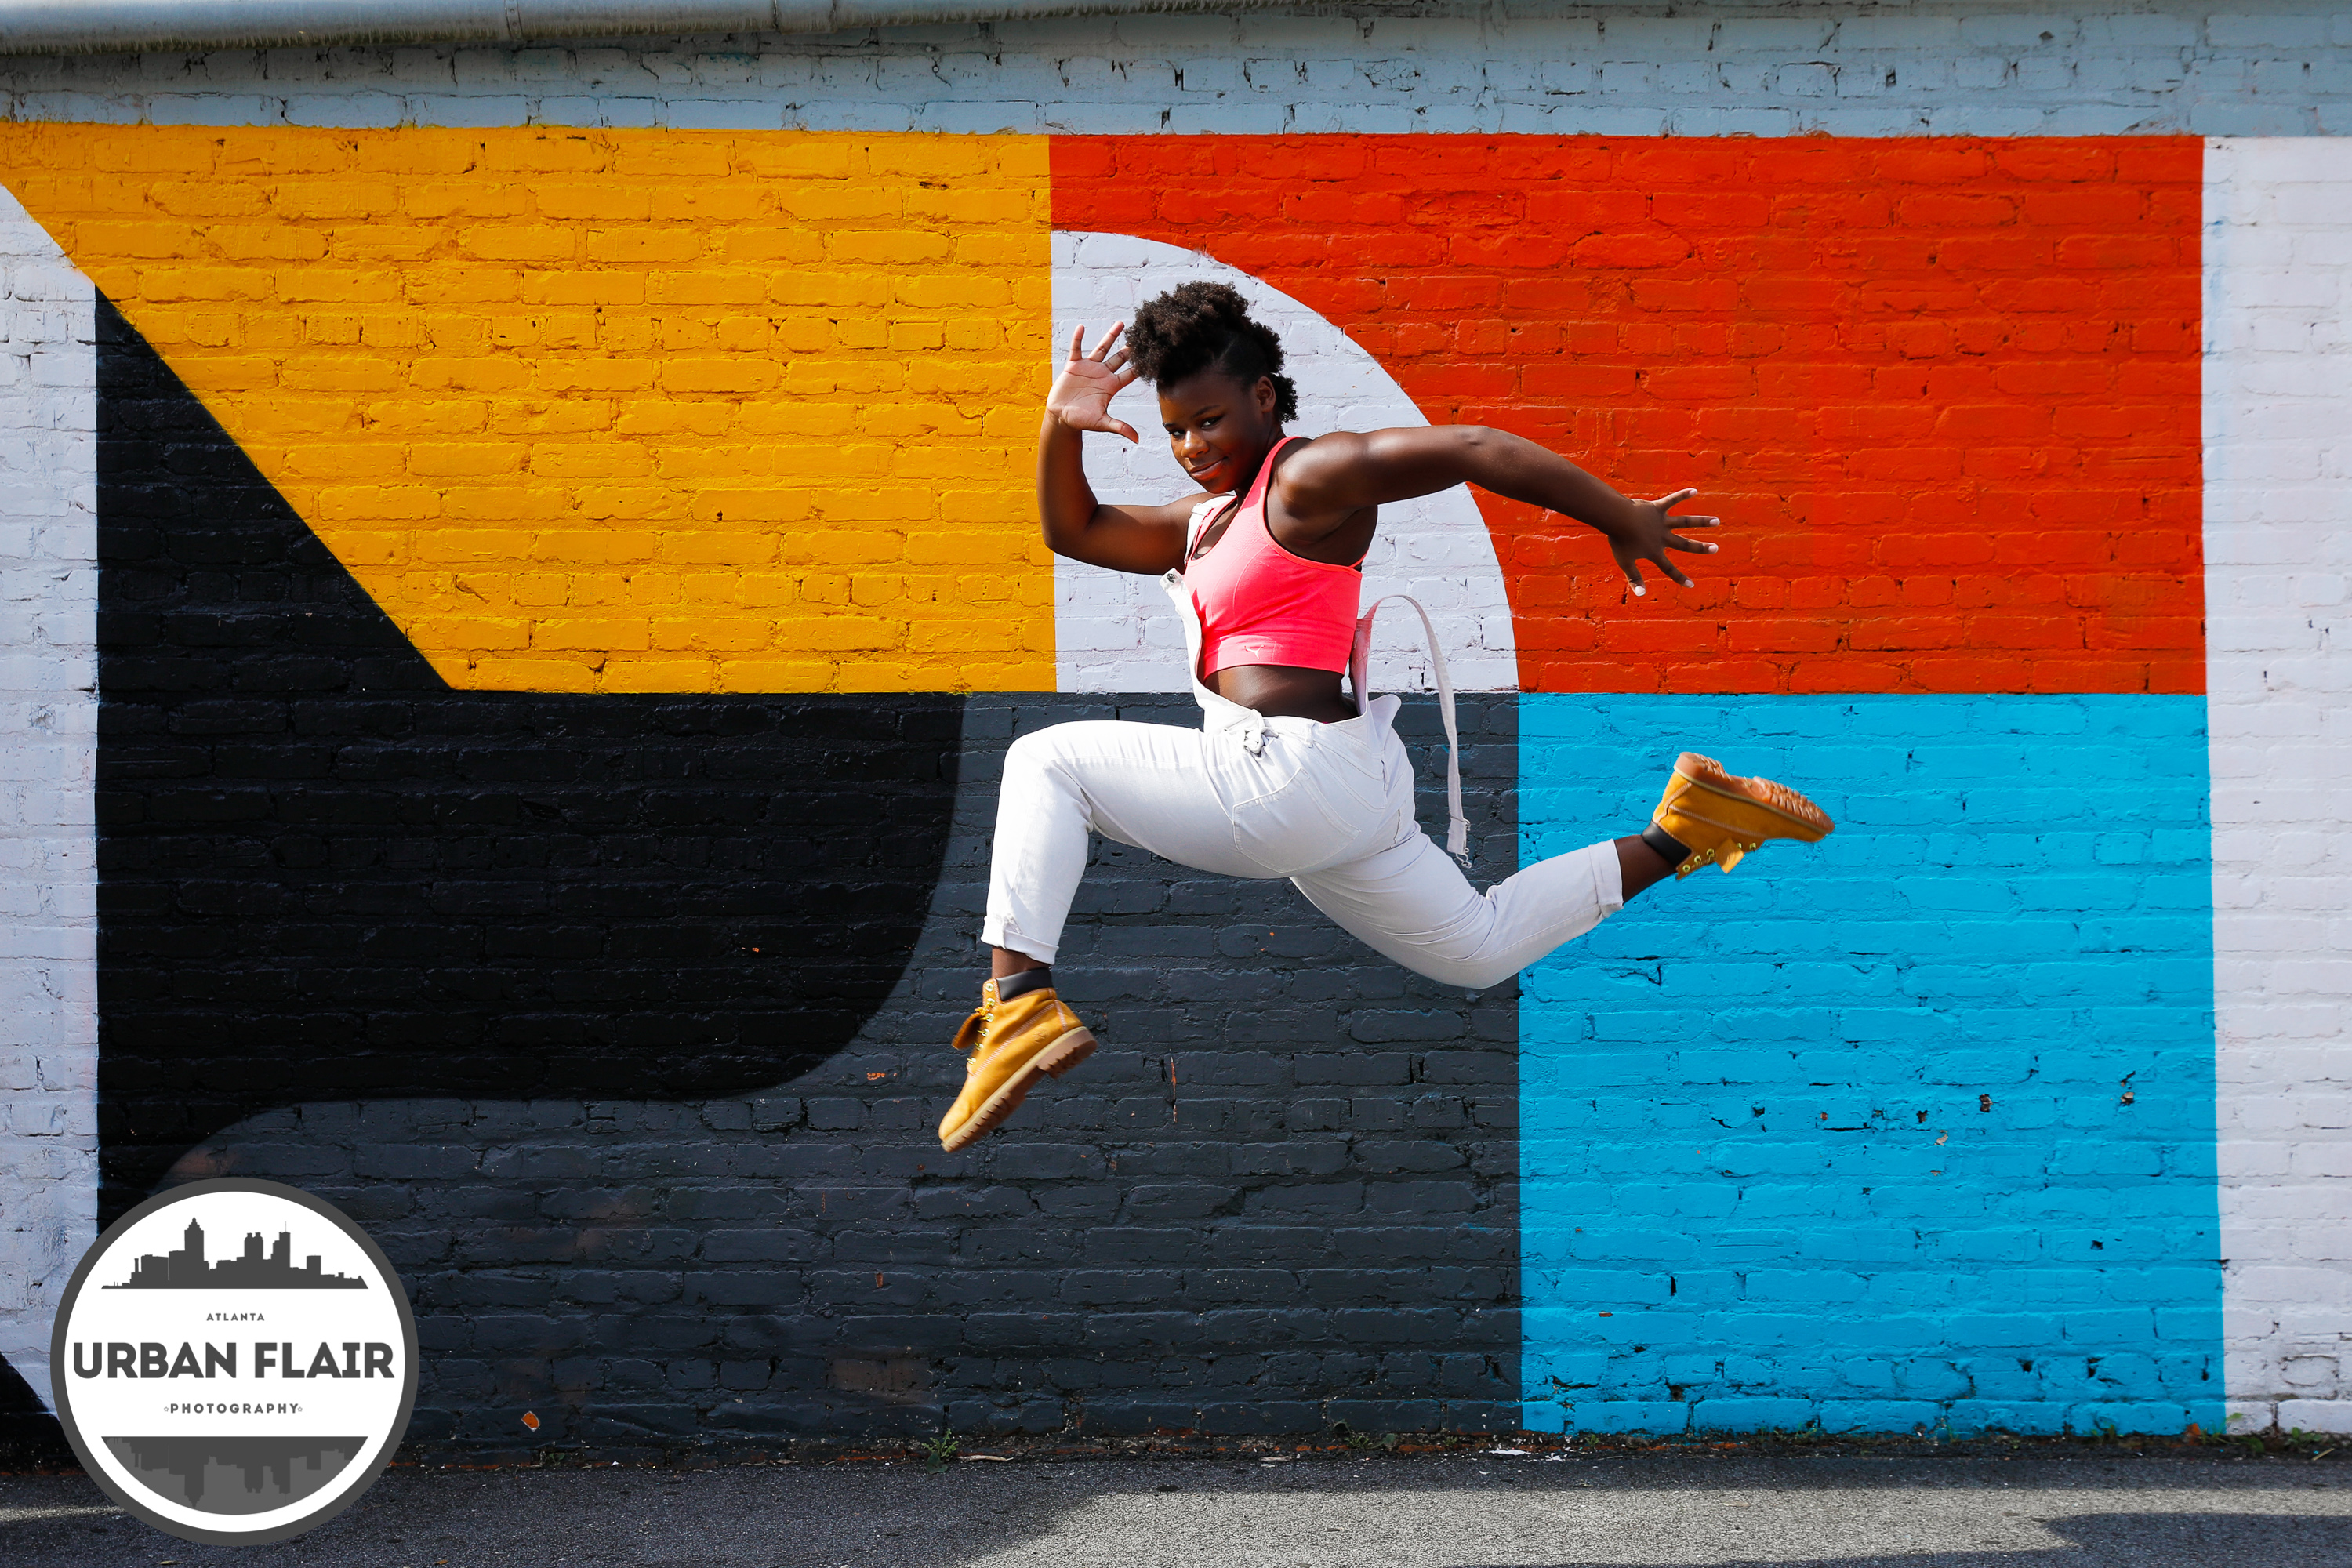 Urban Gymnastics on the streets of Atlanta. Teens and tweens gymnasts captured in the moment by Starr Petronella & Urban Flair Photography